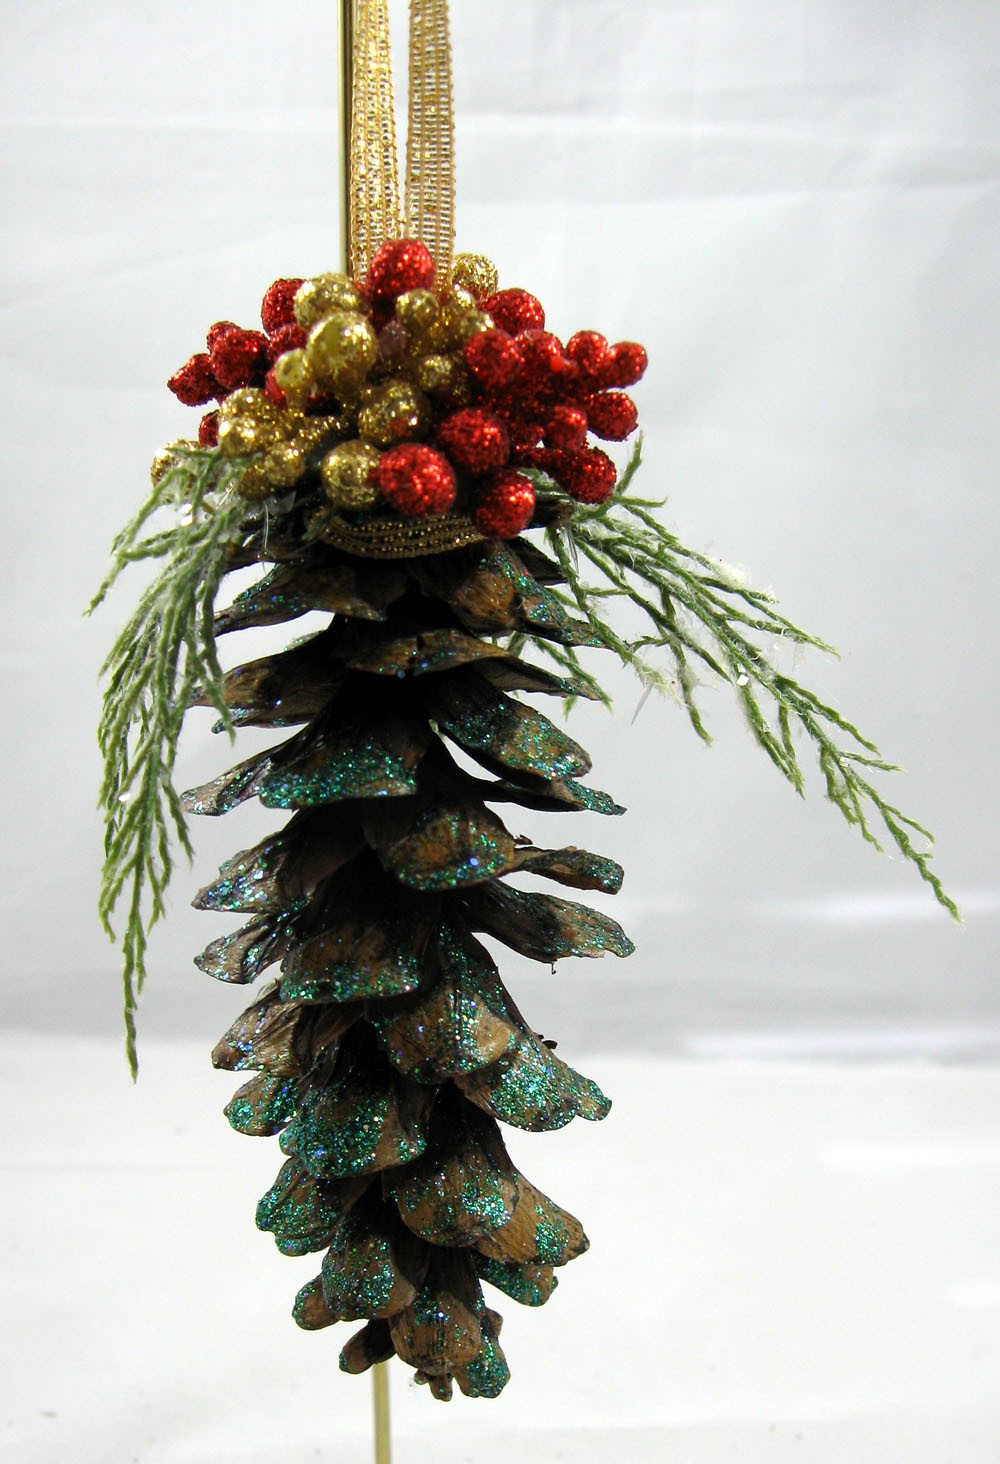 Pine Cone Christmas Ornament Ideas